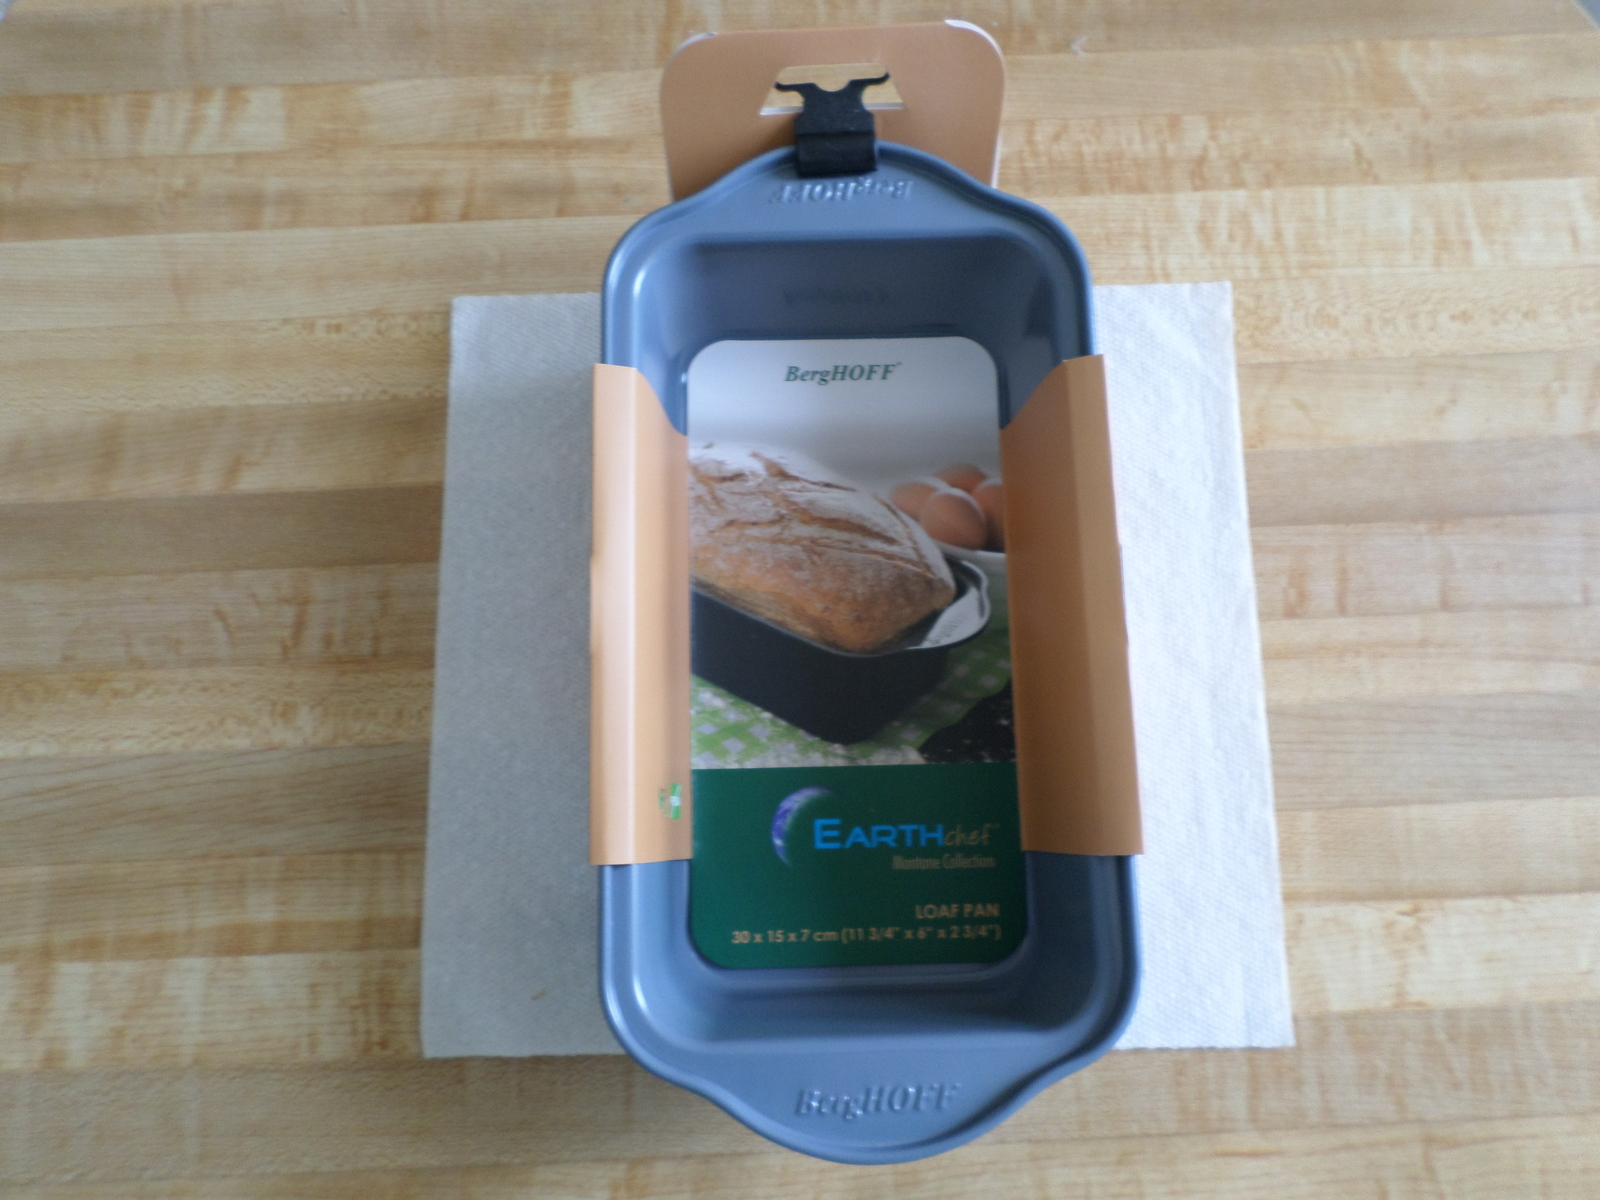 Berghoff Earthchef Loaf Pan - Montane Collection - new - $17.99